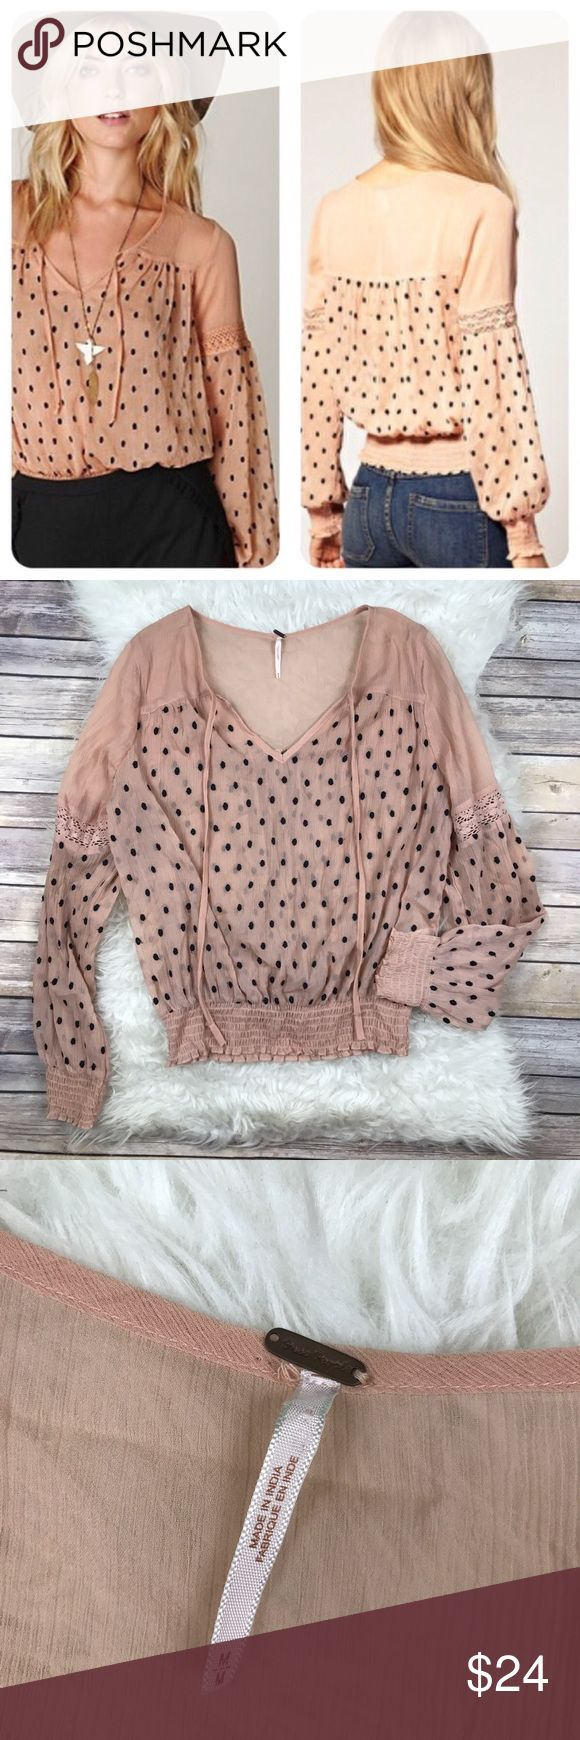 """Free People Nude Chiffon Swiss Dot Peasant Top Good condition Free People Nude Chiffon Swiss Dot Peasant Top. Size Medium. Small staining on one cuff seen in picture. Smocked hem and cuffs. Sheer. Bust 44"""", length 23"""", sleeve length 26"""". A few loose dot threads. No trades, offers welcome. Free People Tops Blouses"""